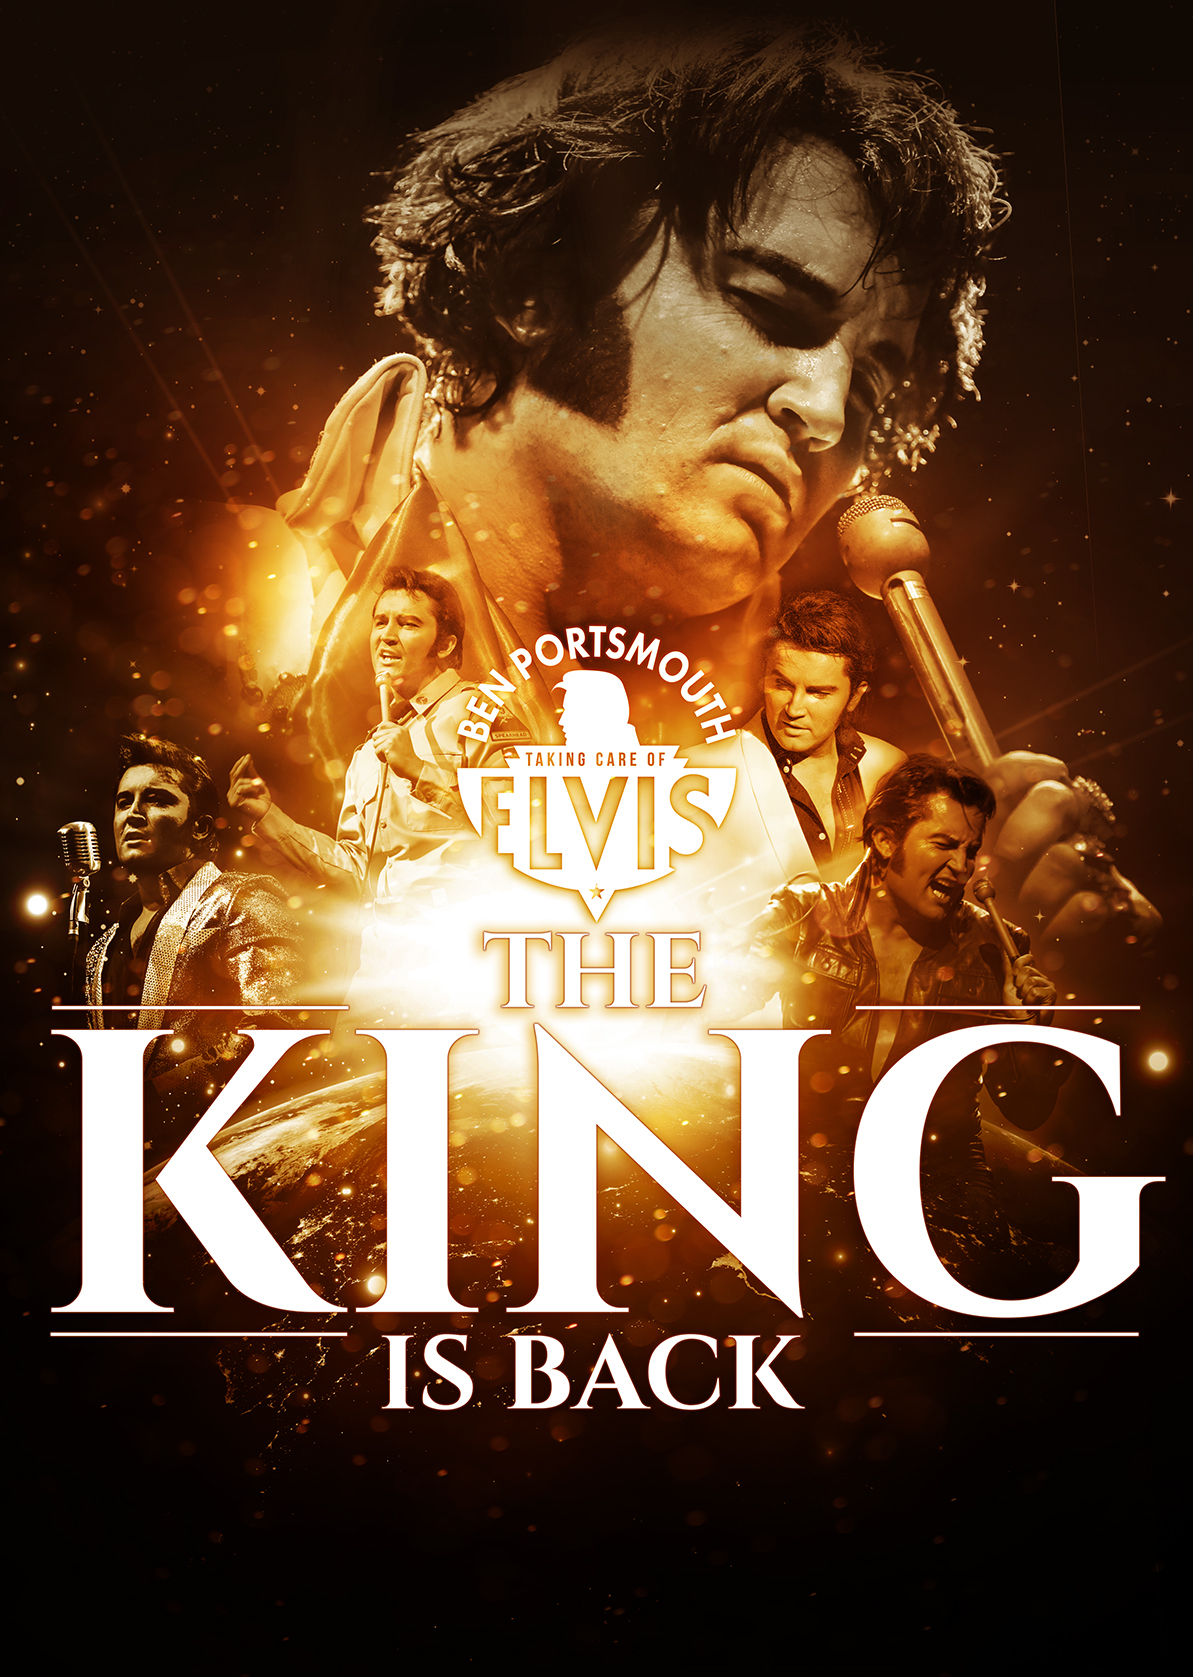 The King is Back – The Elvis show flyer